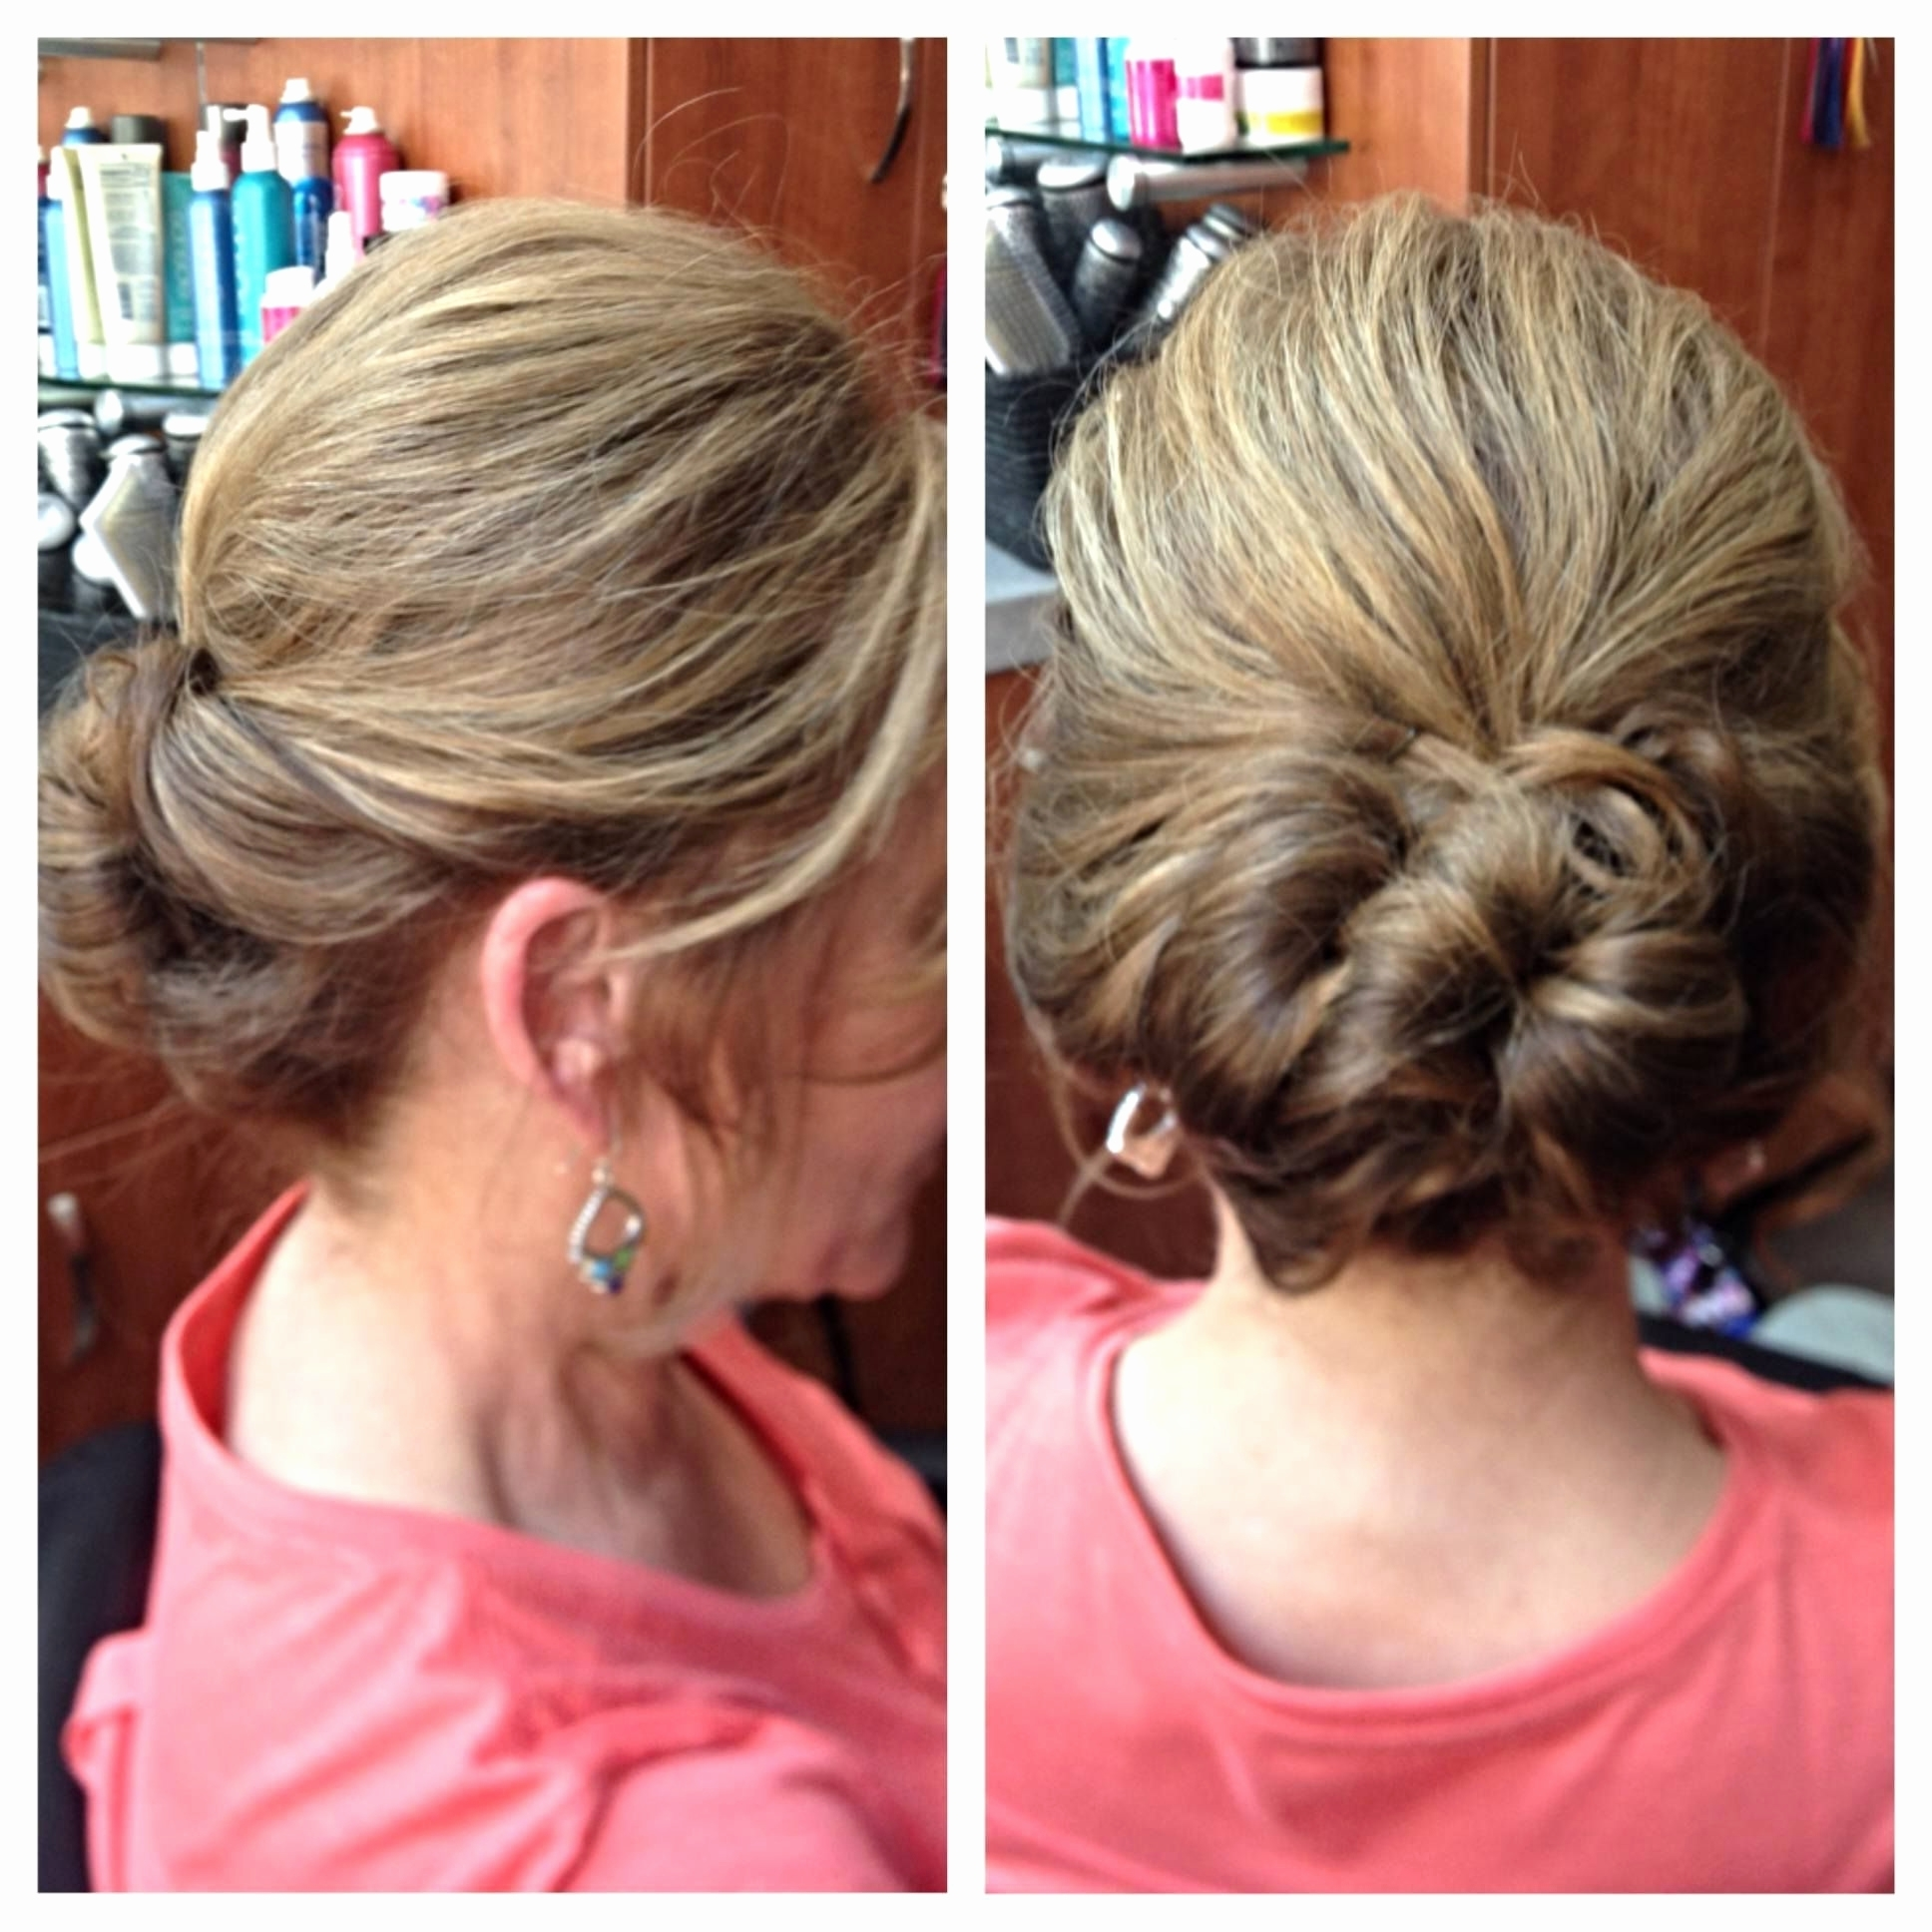 Magnificent Hairstyles For Wedding Mother Of The Bride – Hair With Regard To Mother Of The Bride Updos (View 7 of 15)